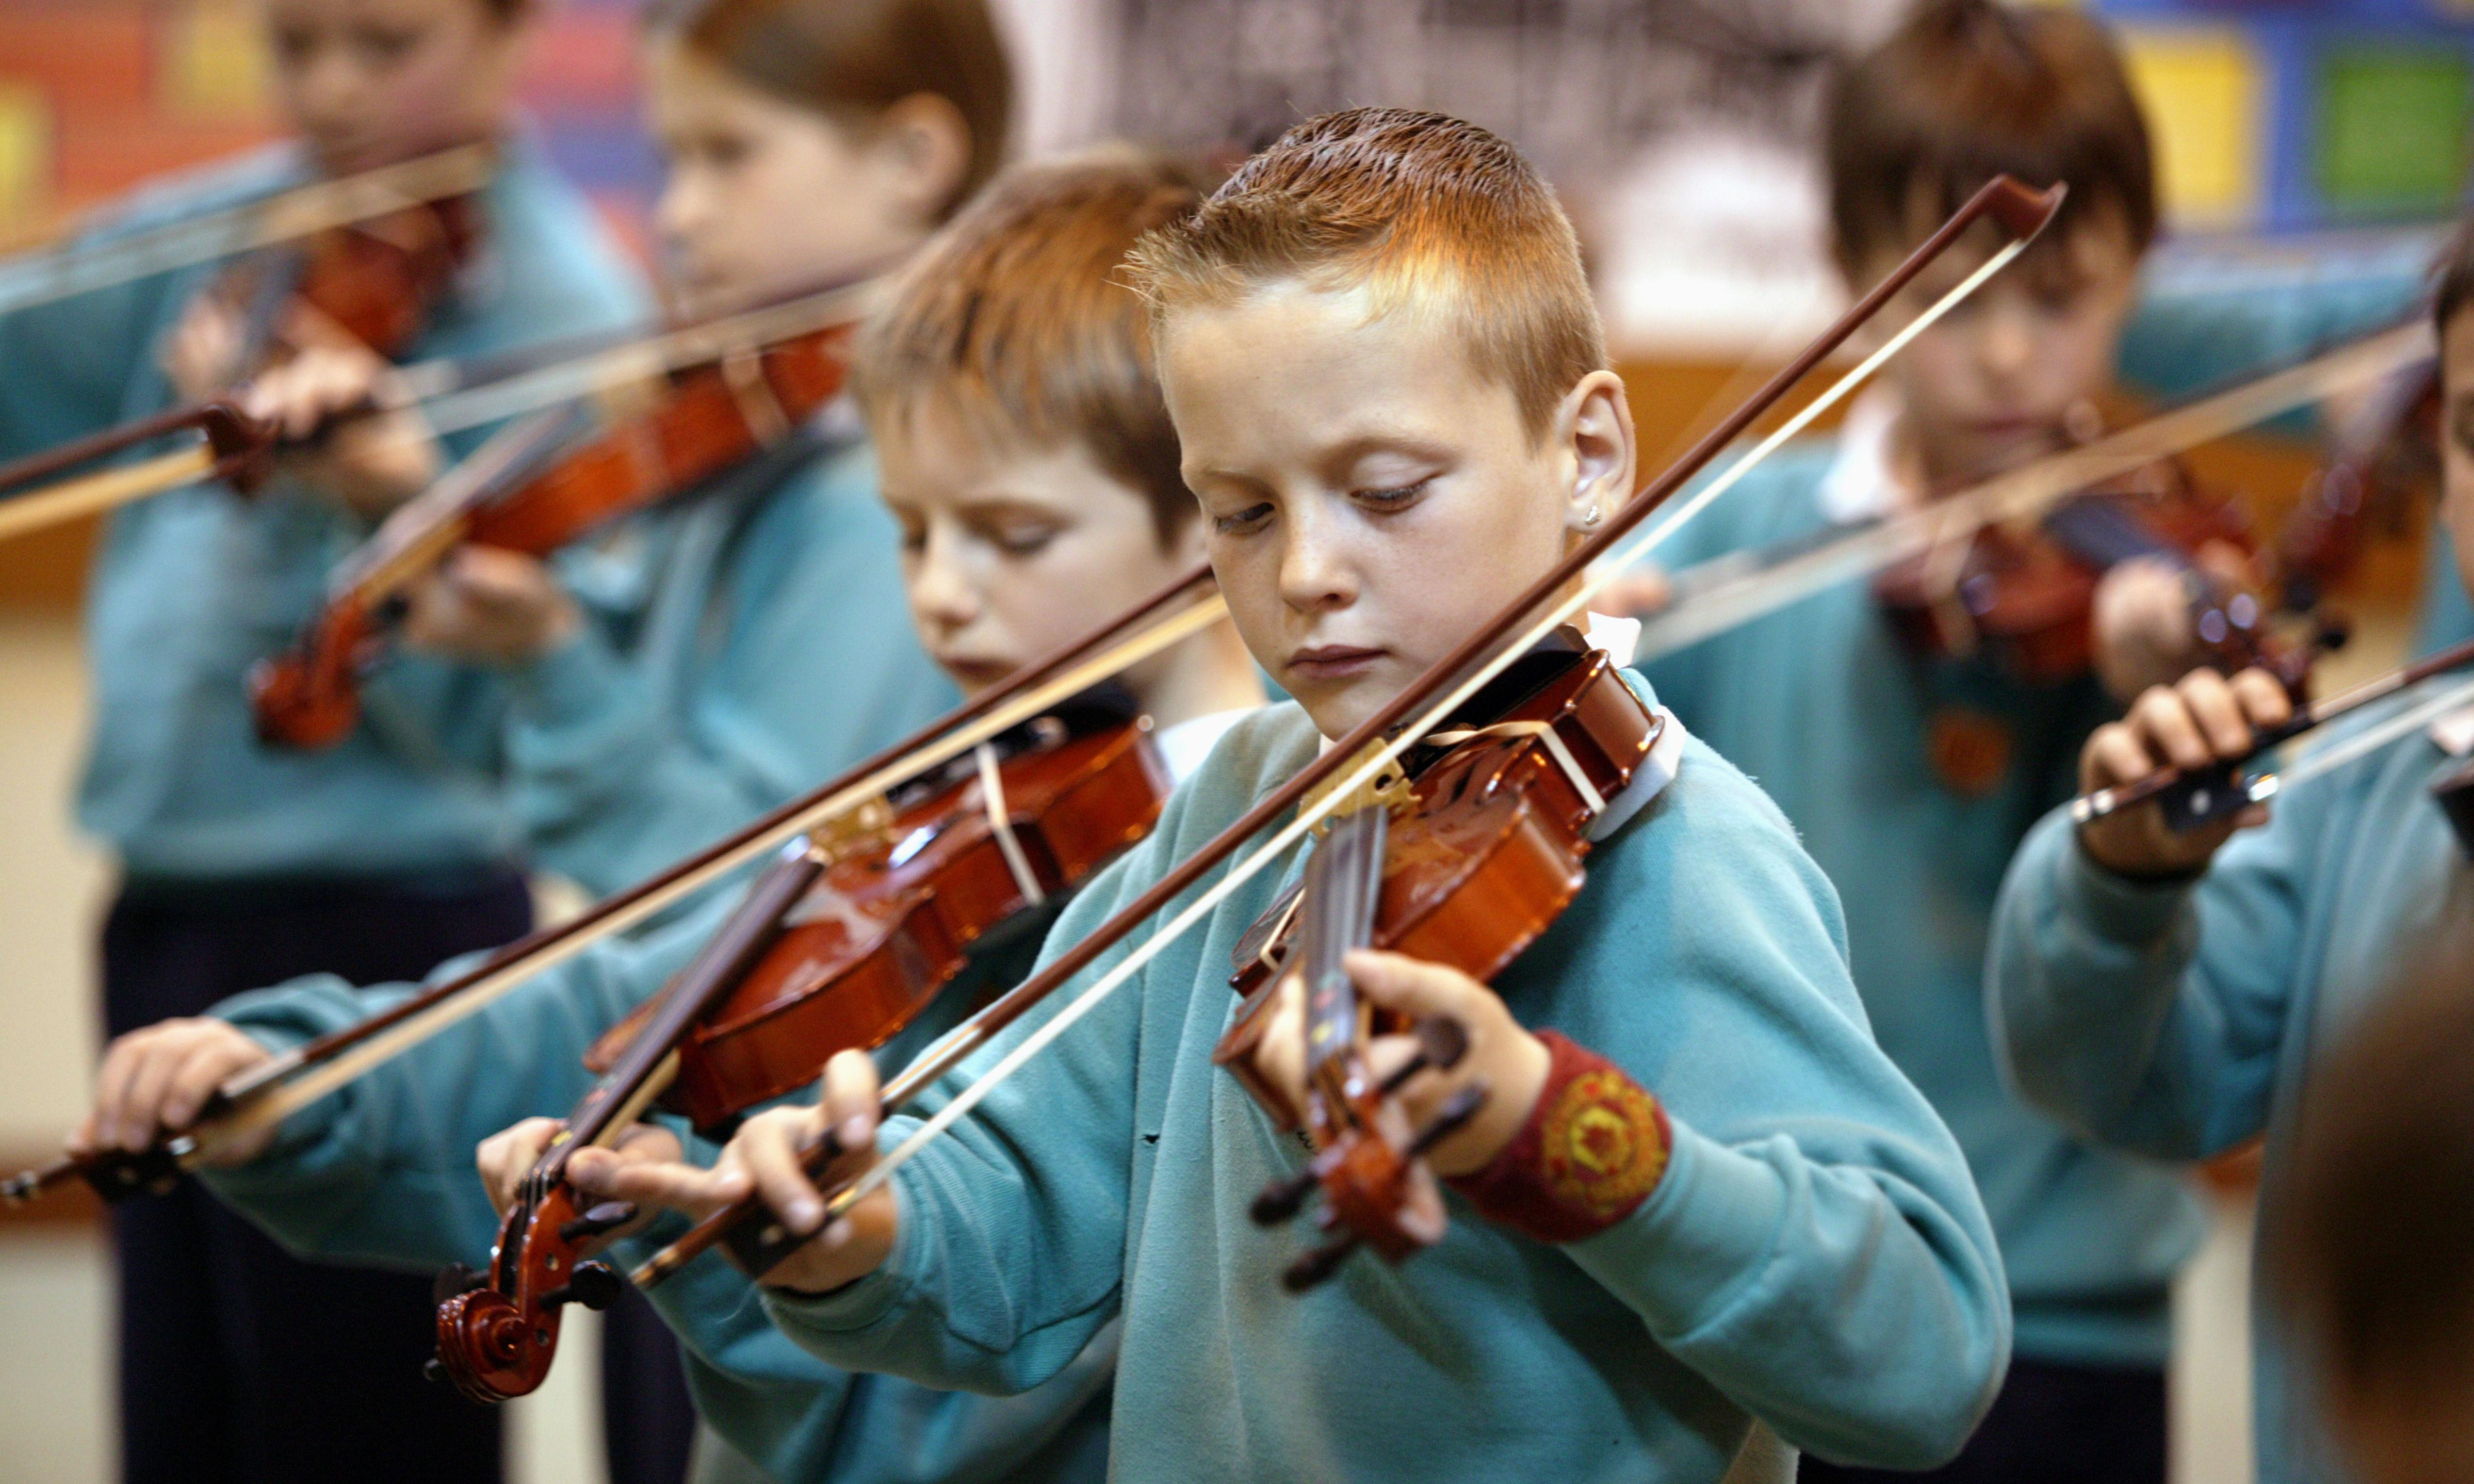 The arts are vital for young people